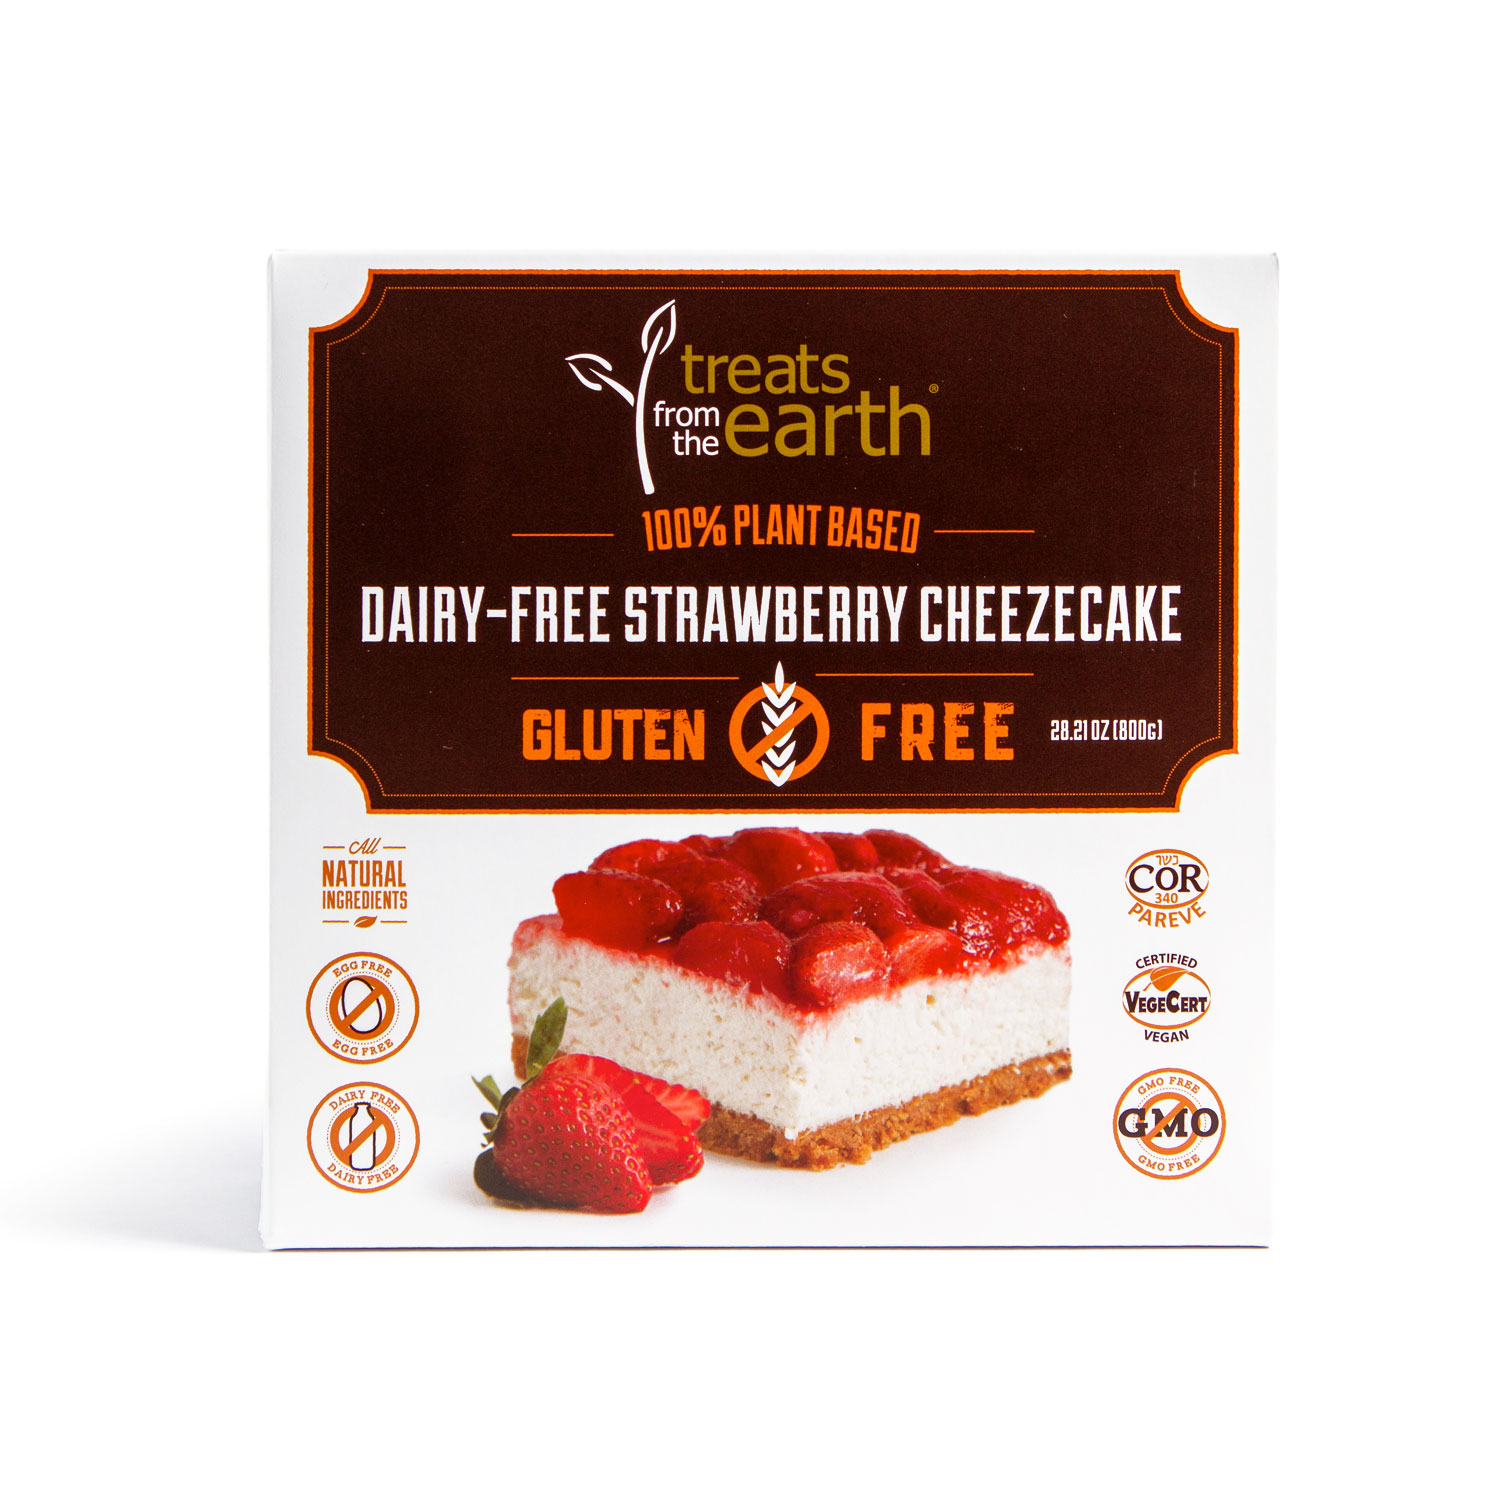 Gluten Free & Dairy Free Strawberry Cheezecake